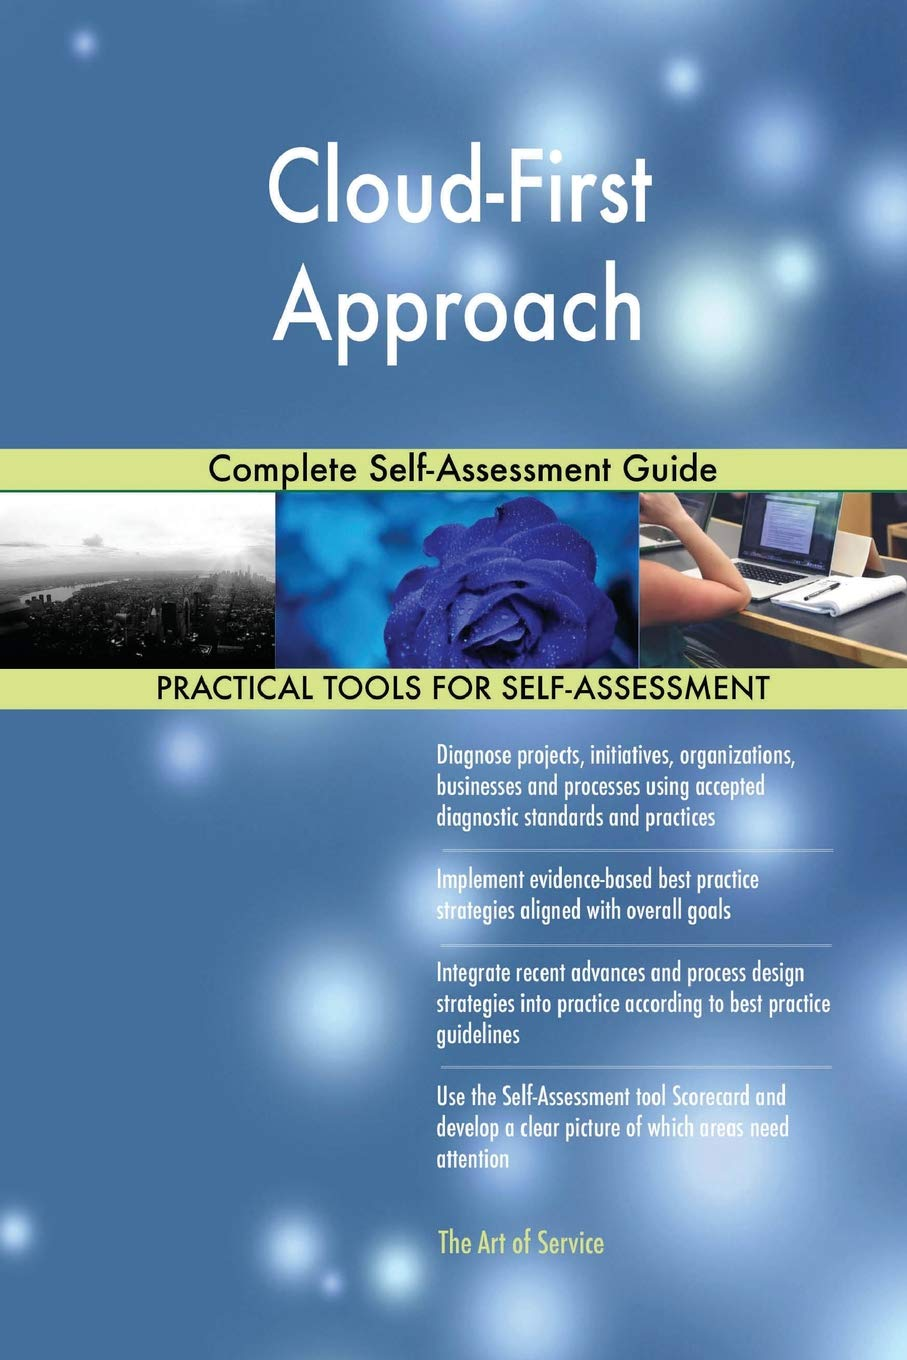 Cloud-First Approach Complete Self-Assessment Guide